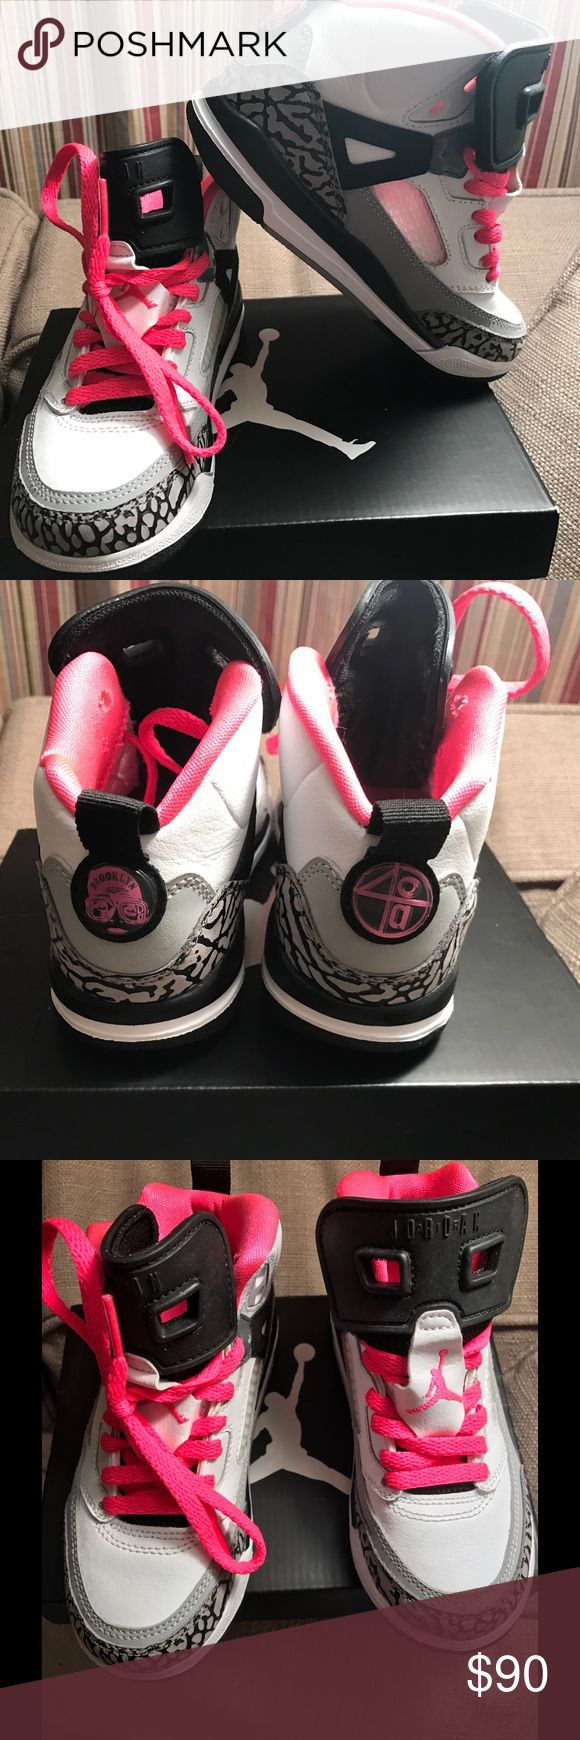 Jordan Spizike PERFECT CONDITION worn once             Jordan Spizike with pink detail and pink laces Jordan Shoes Sneakers